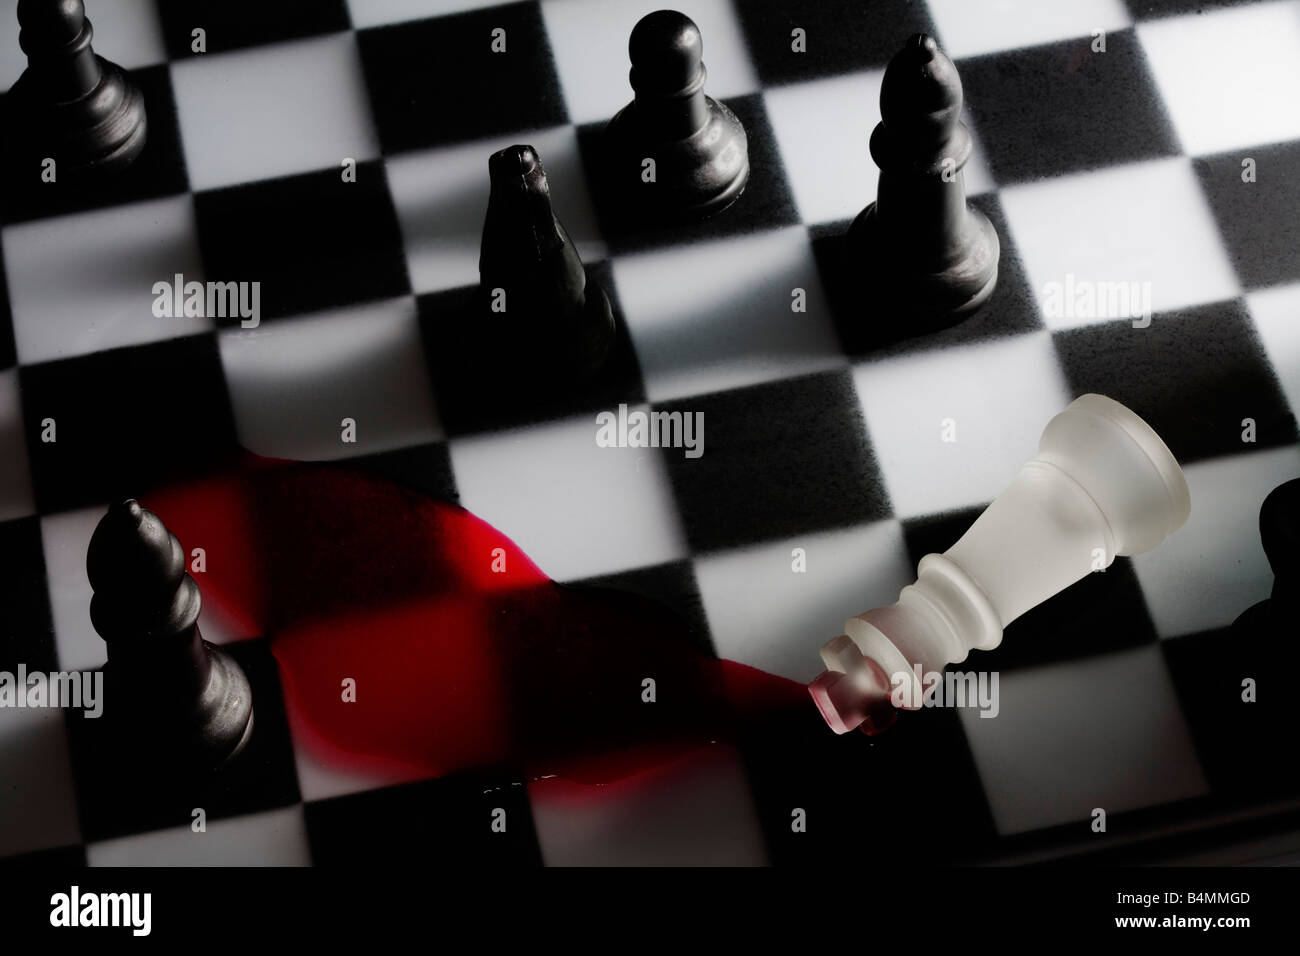 The King is toppled in a game of Chess - Checkmate - Stock Image